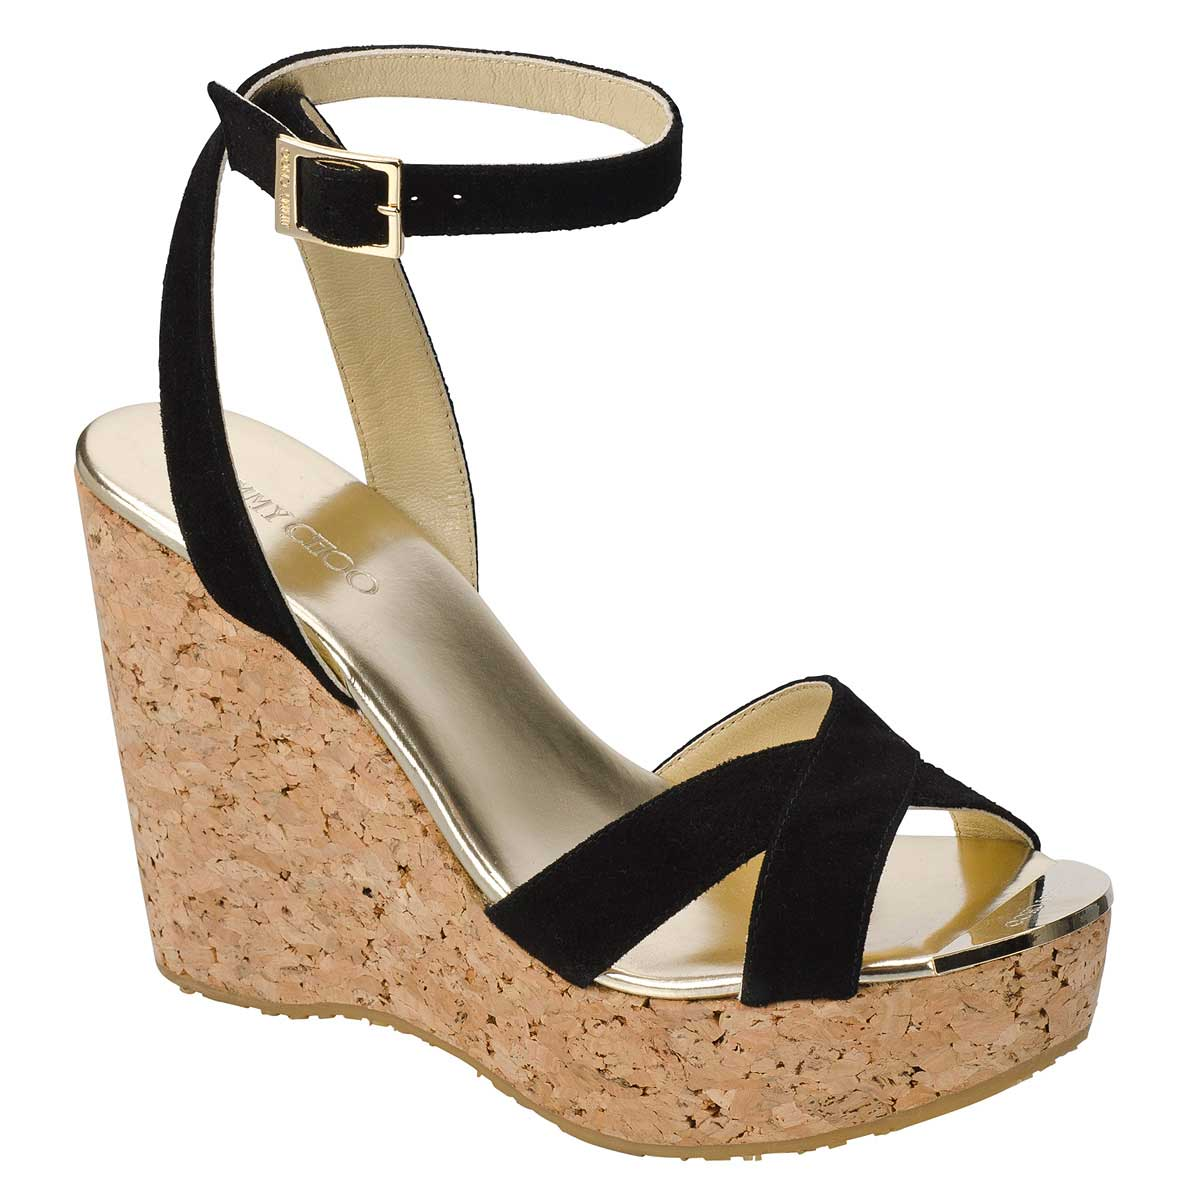 Jimmy Choo Shoes Spring Collection 2012 2 Wedges